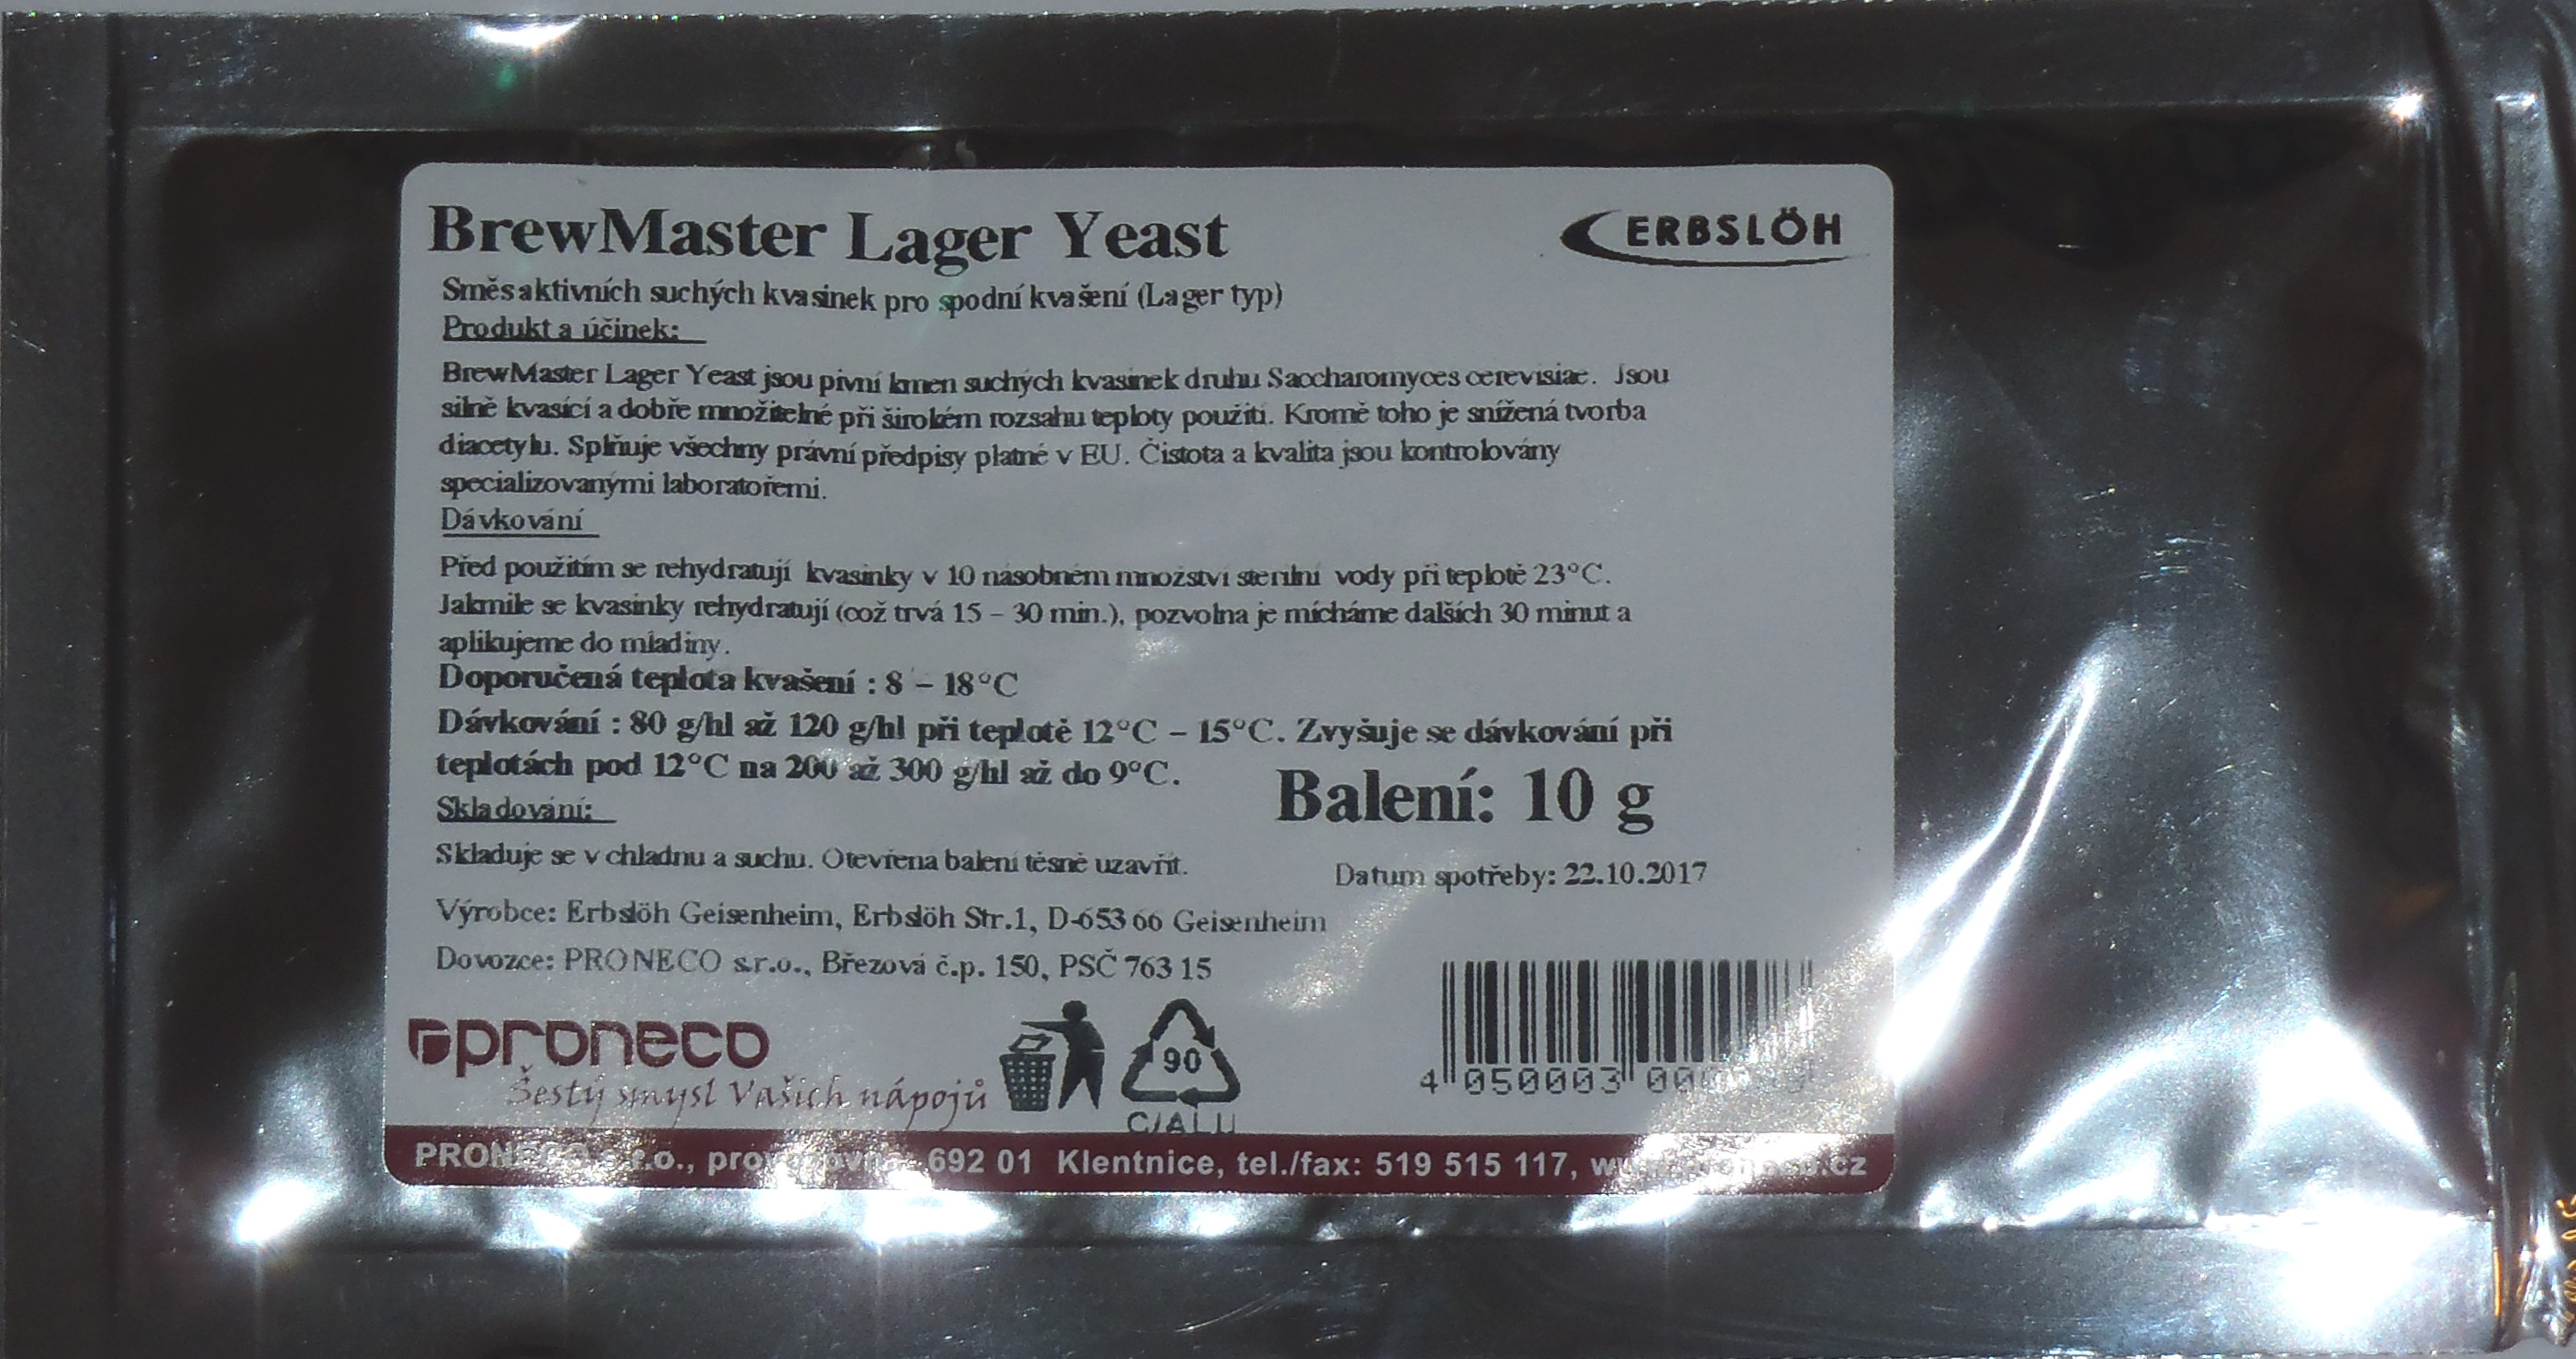 BrewMaster Lager Yeast 10g